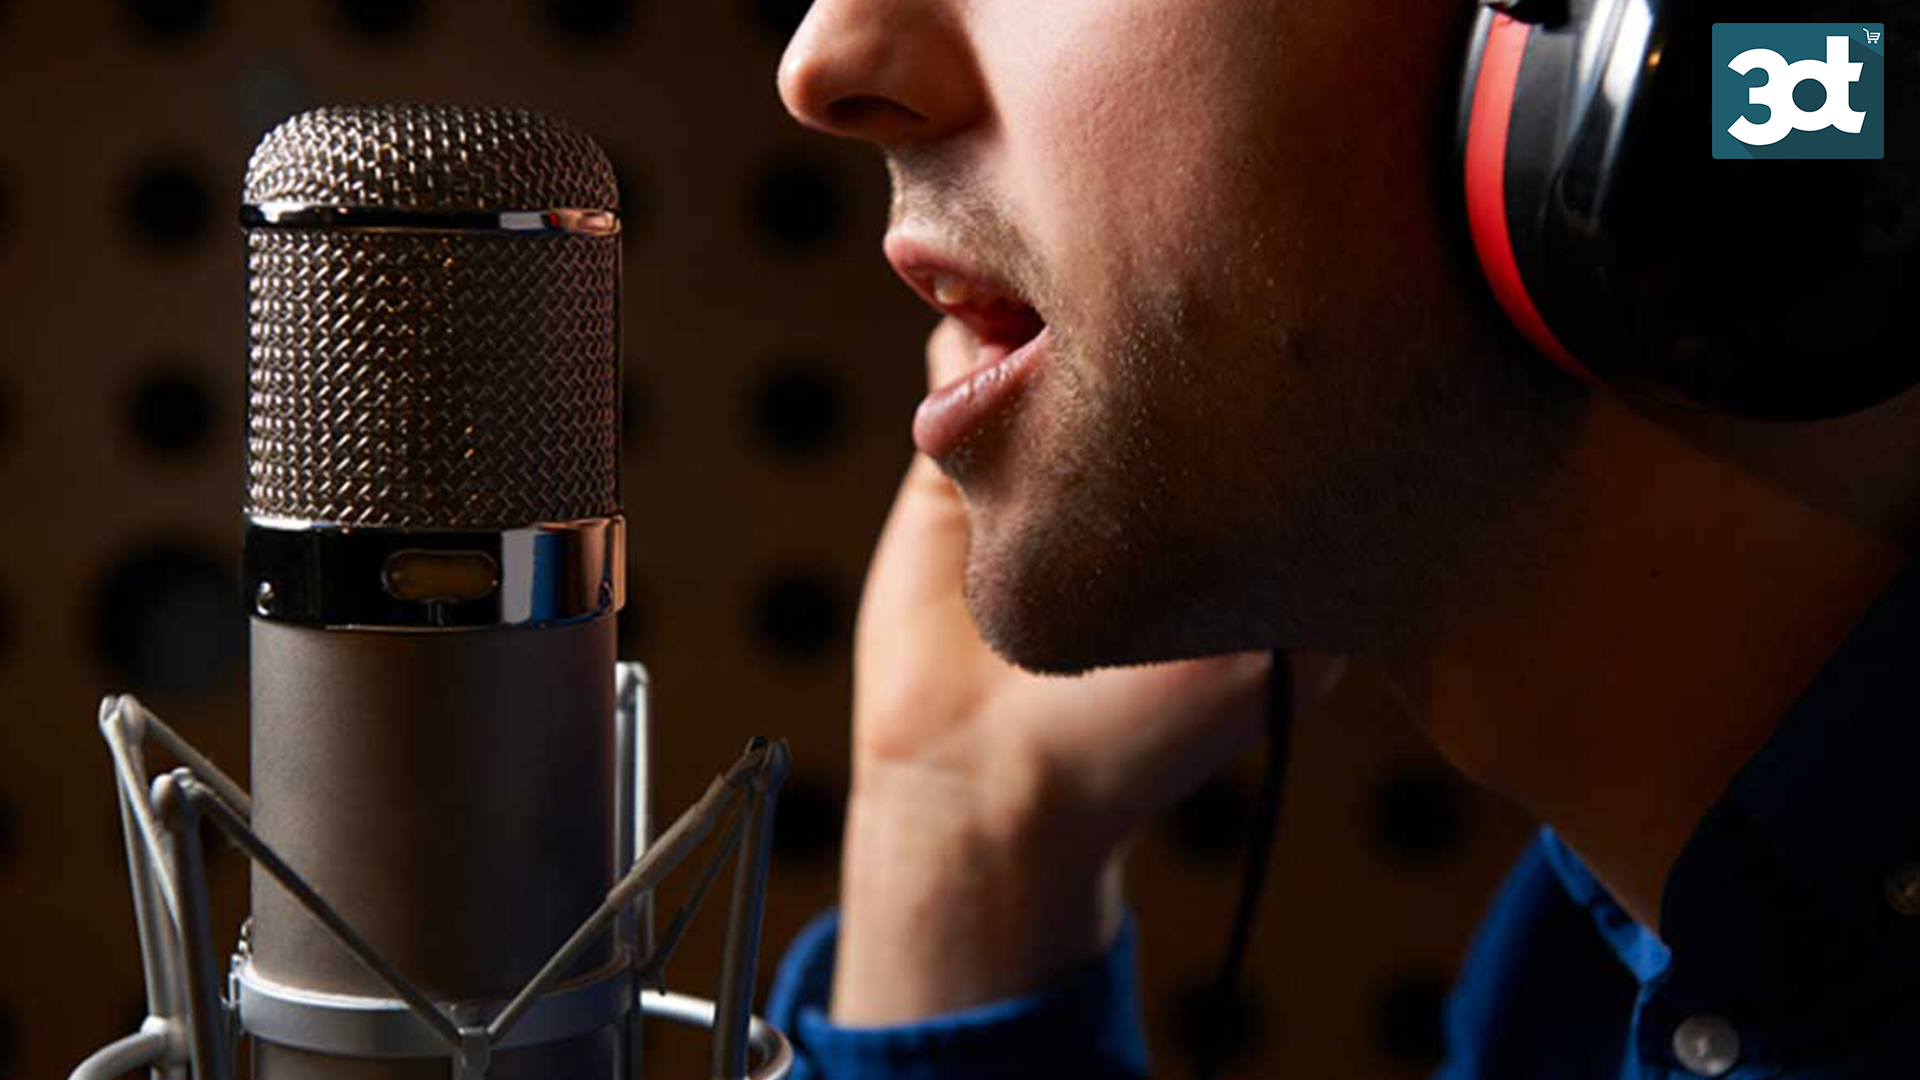 Tilbud på professionel voice-over online